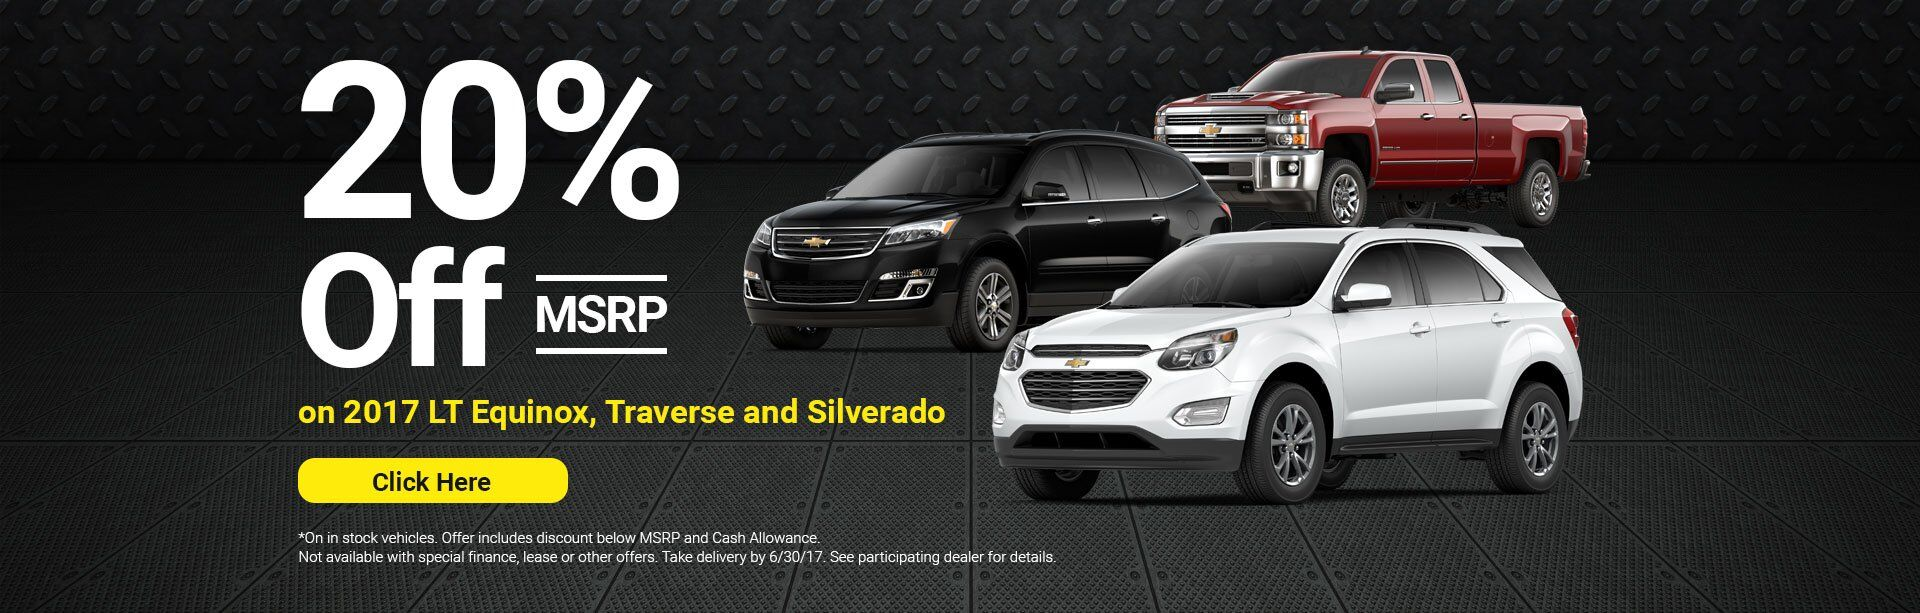 20% Off 2017 LT Equinox/Traverse/Silverado